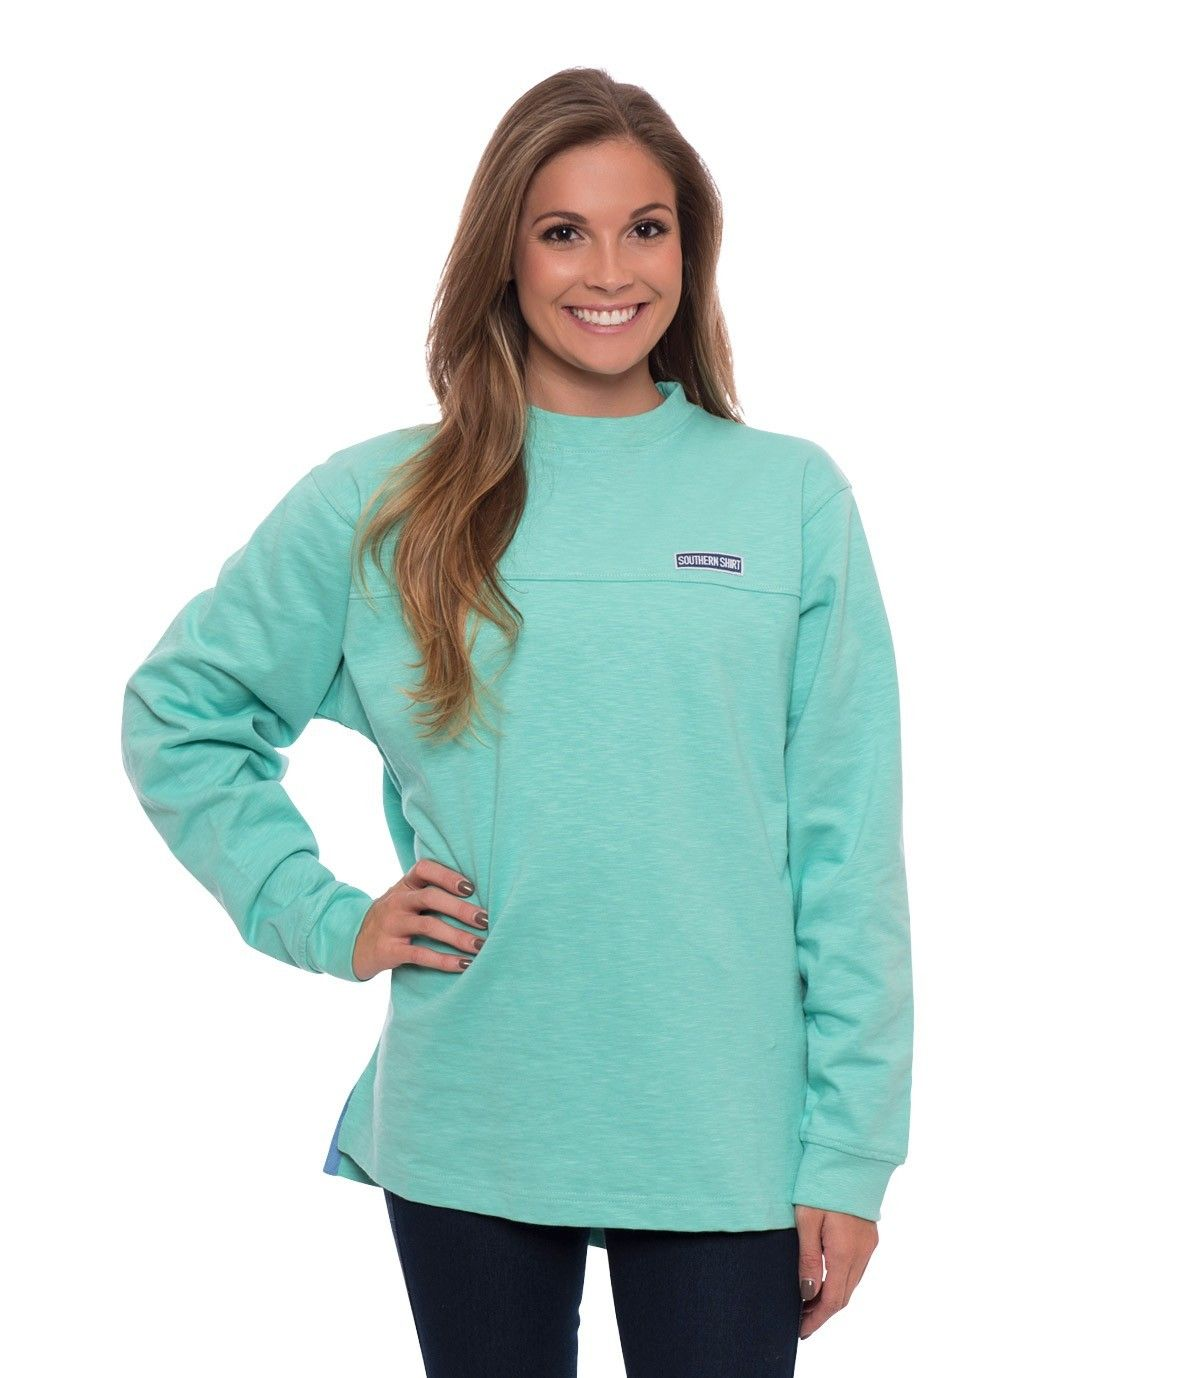 Cotton Club Pullover #SSCOWISHLIST @southernshirt | Prep in the ...